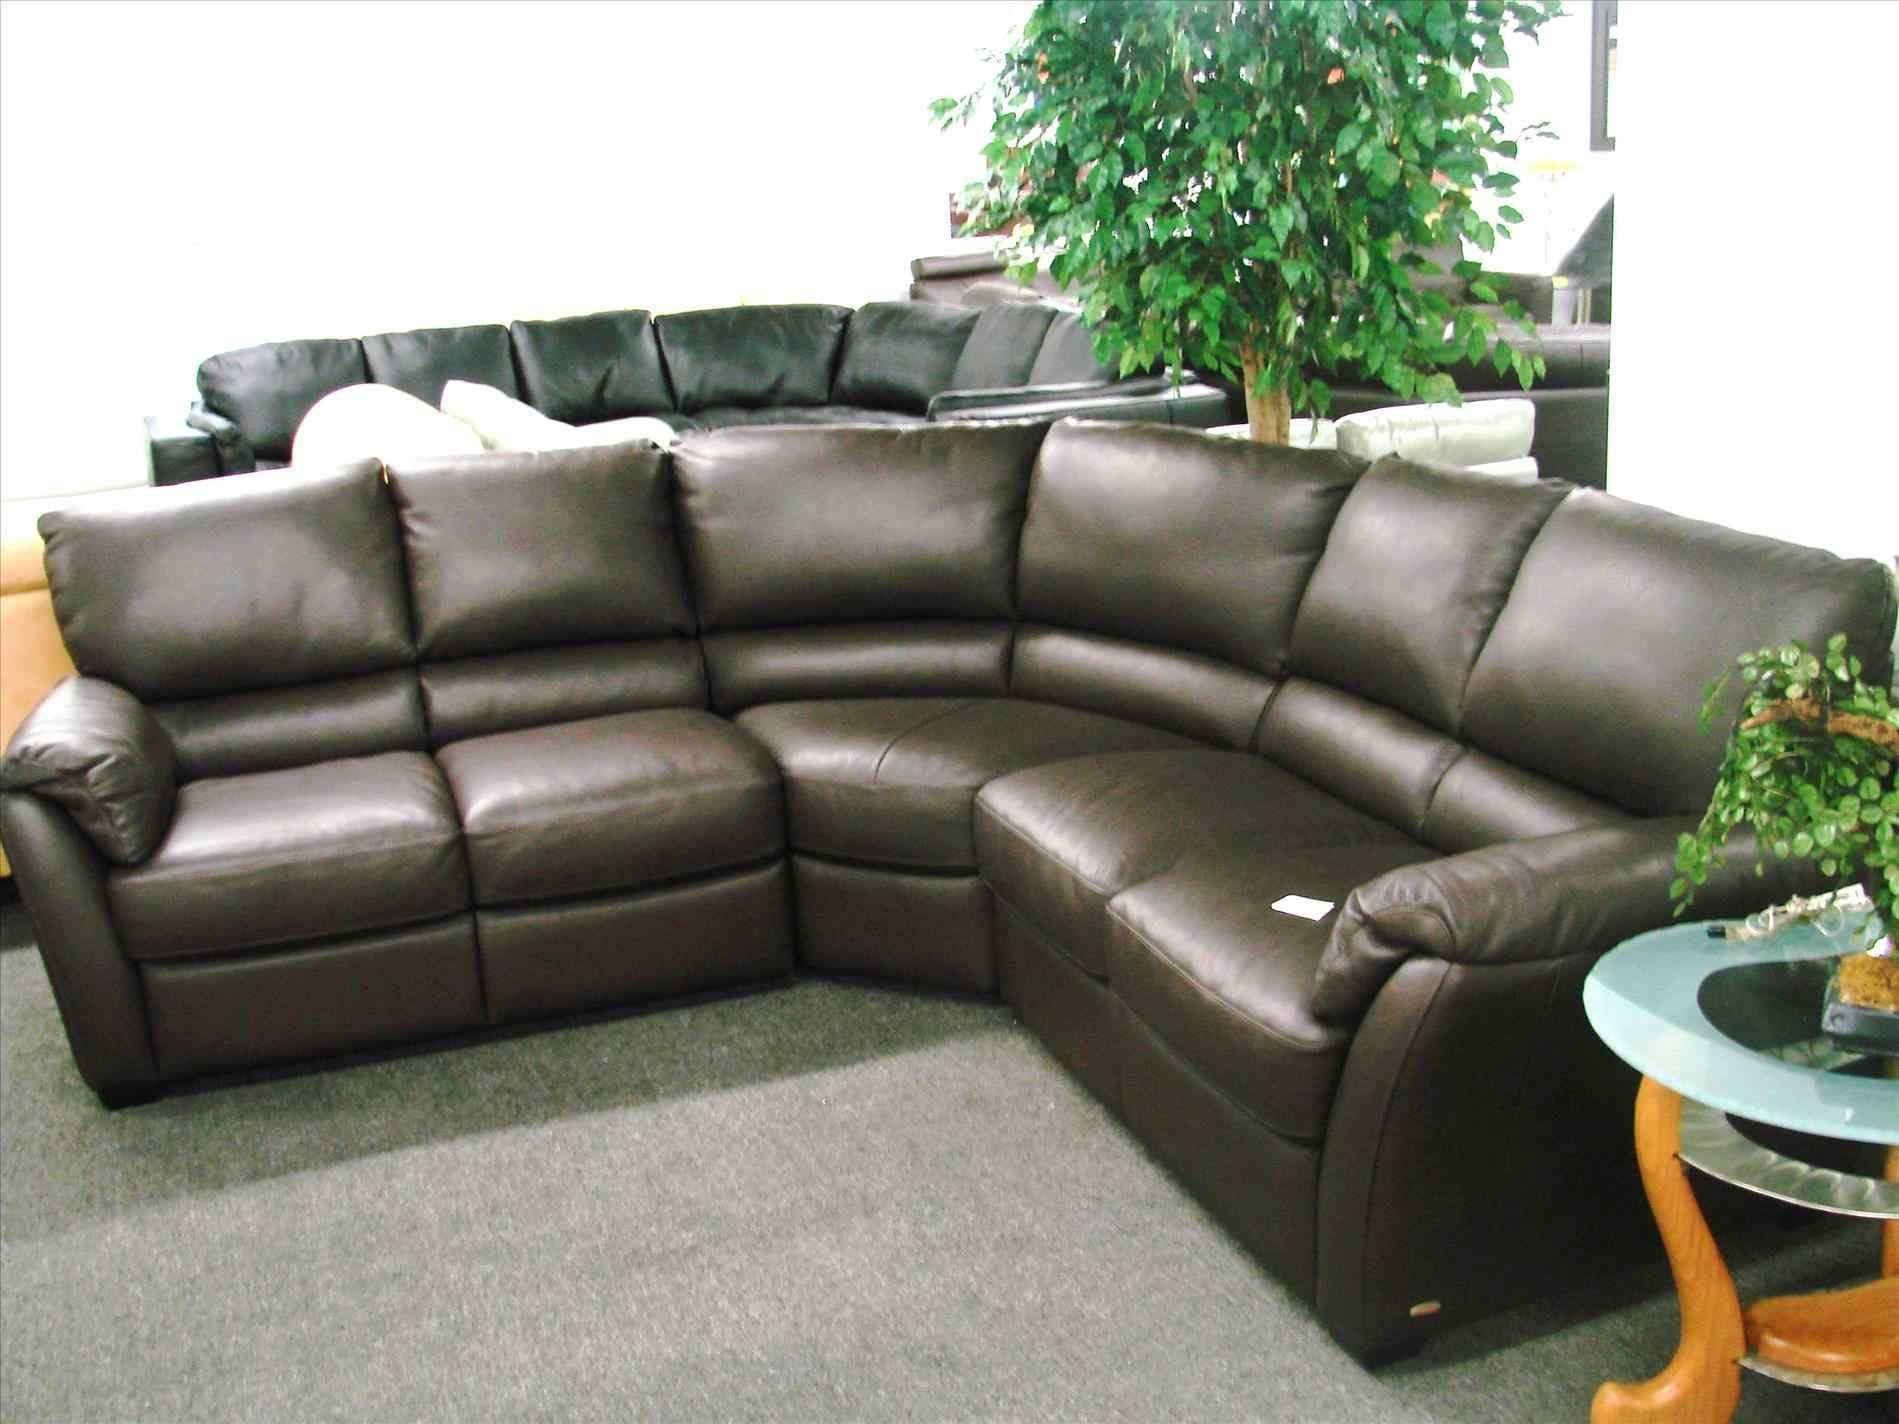 leather club chairs nebraska furniture mart mickey mouse chair and table 10 collection of sectional sofas